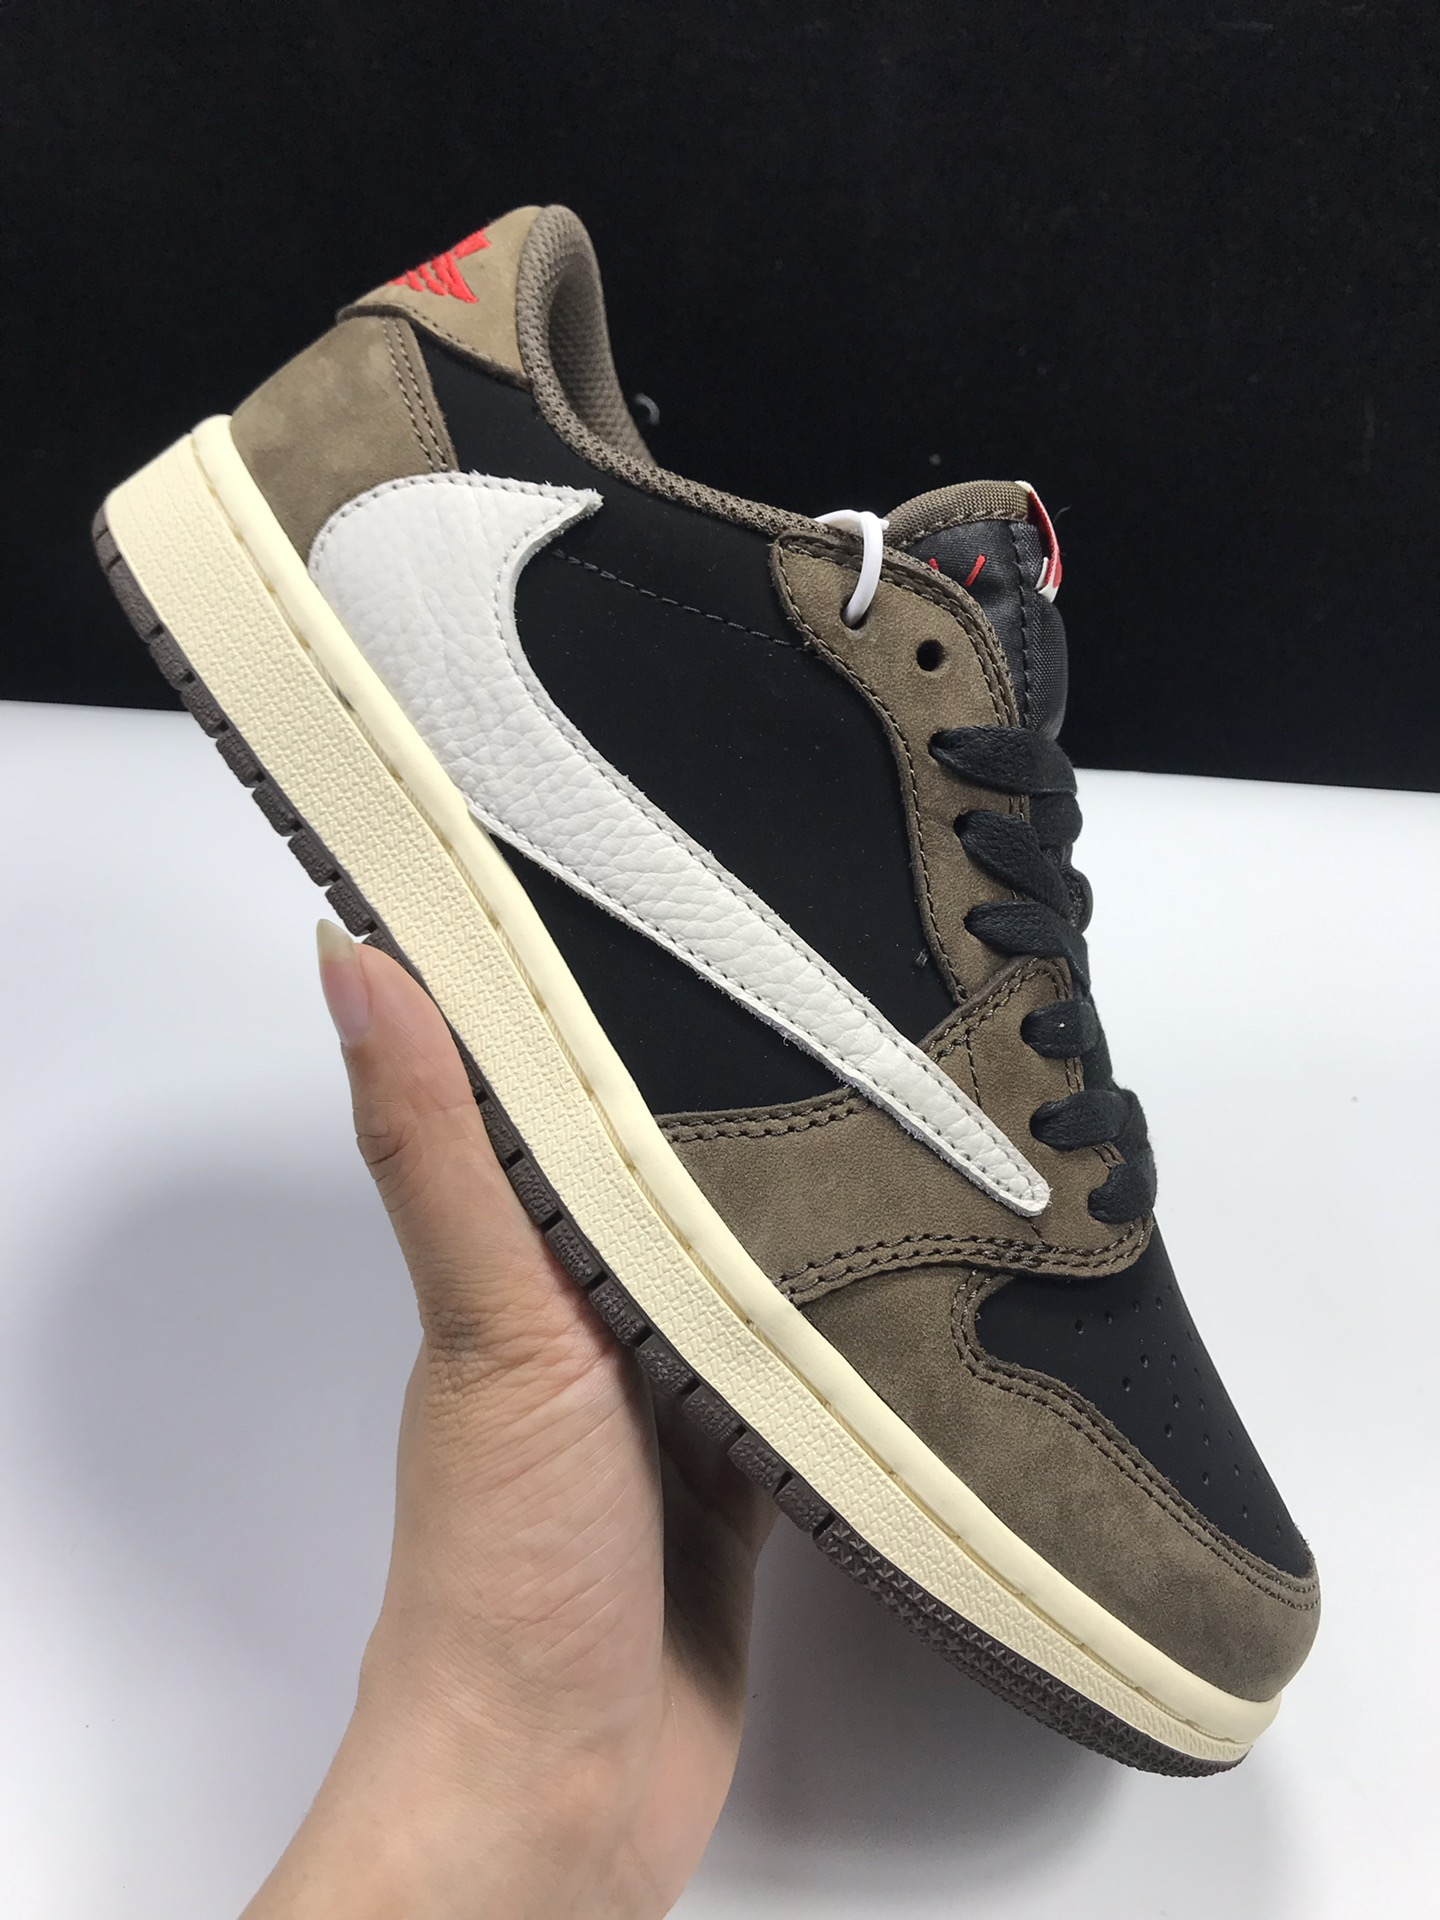 LW:AJ1倒勾低帮 AJ1 X Travis Scott Low ,货号:CQ4277-001_ljr版本好og